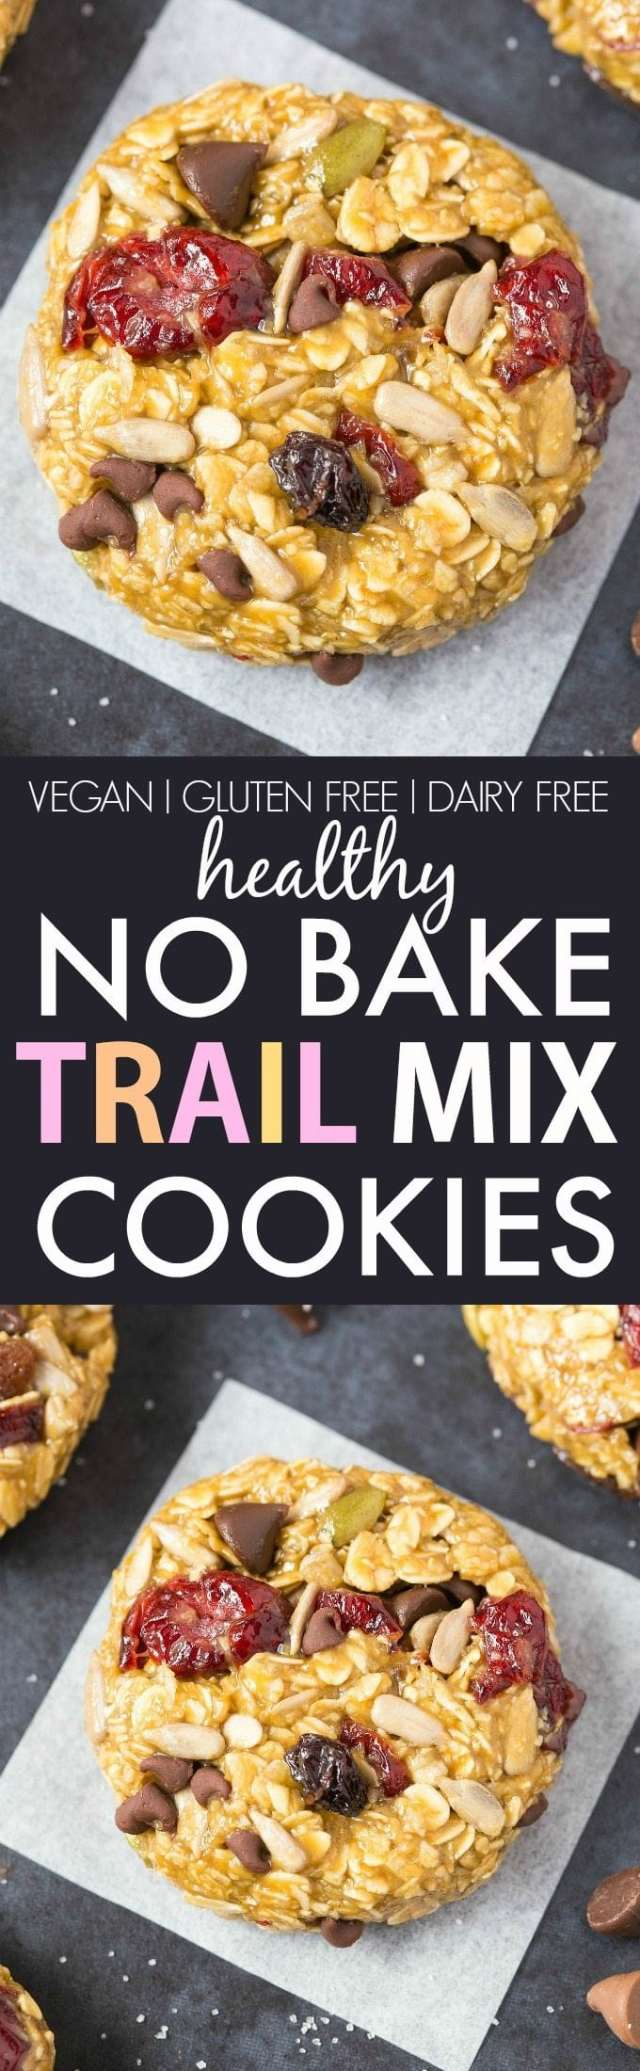 No Bake Trail Mix Cookies (V, GF, DF)- Easy, fuss-free and delicious, this healthy no bake thick and chewy cookie combines cereal and customizable add-ins in one! {vegan, gluten free, sugar free recipe}- thebigmansworld.com